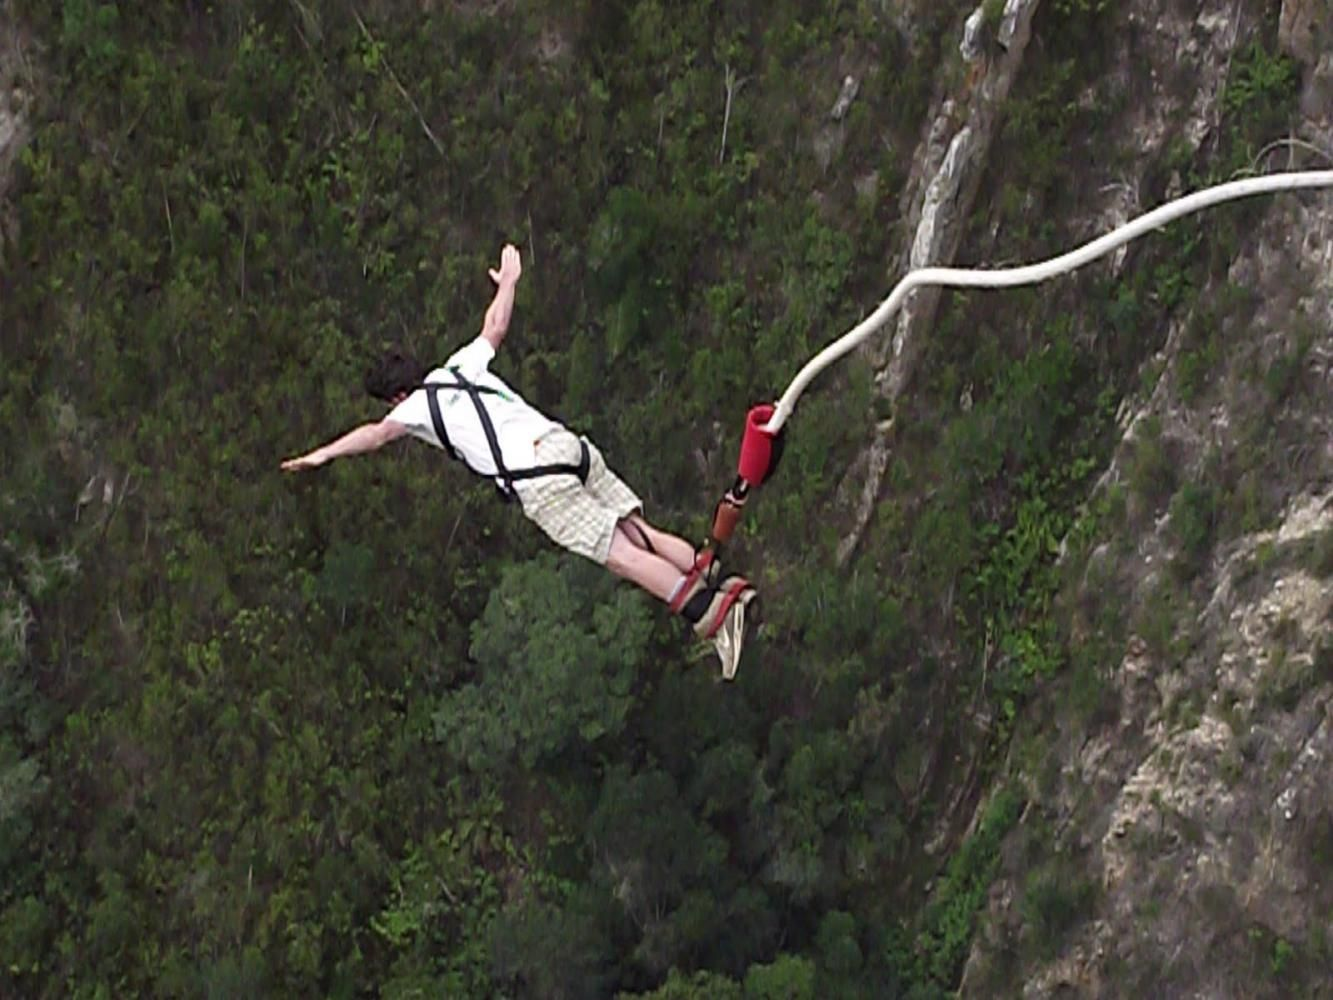 Jump With Rubber Chords Tied To Your Ankle And Feel The Ultimate Adrenalin Rush Like Never Before The Bungee Bungee Jumping Adventure Sports Adventure Holiday